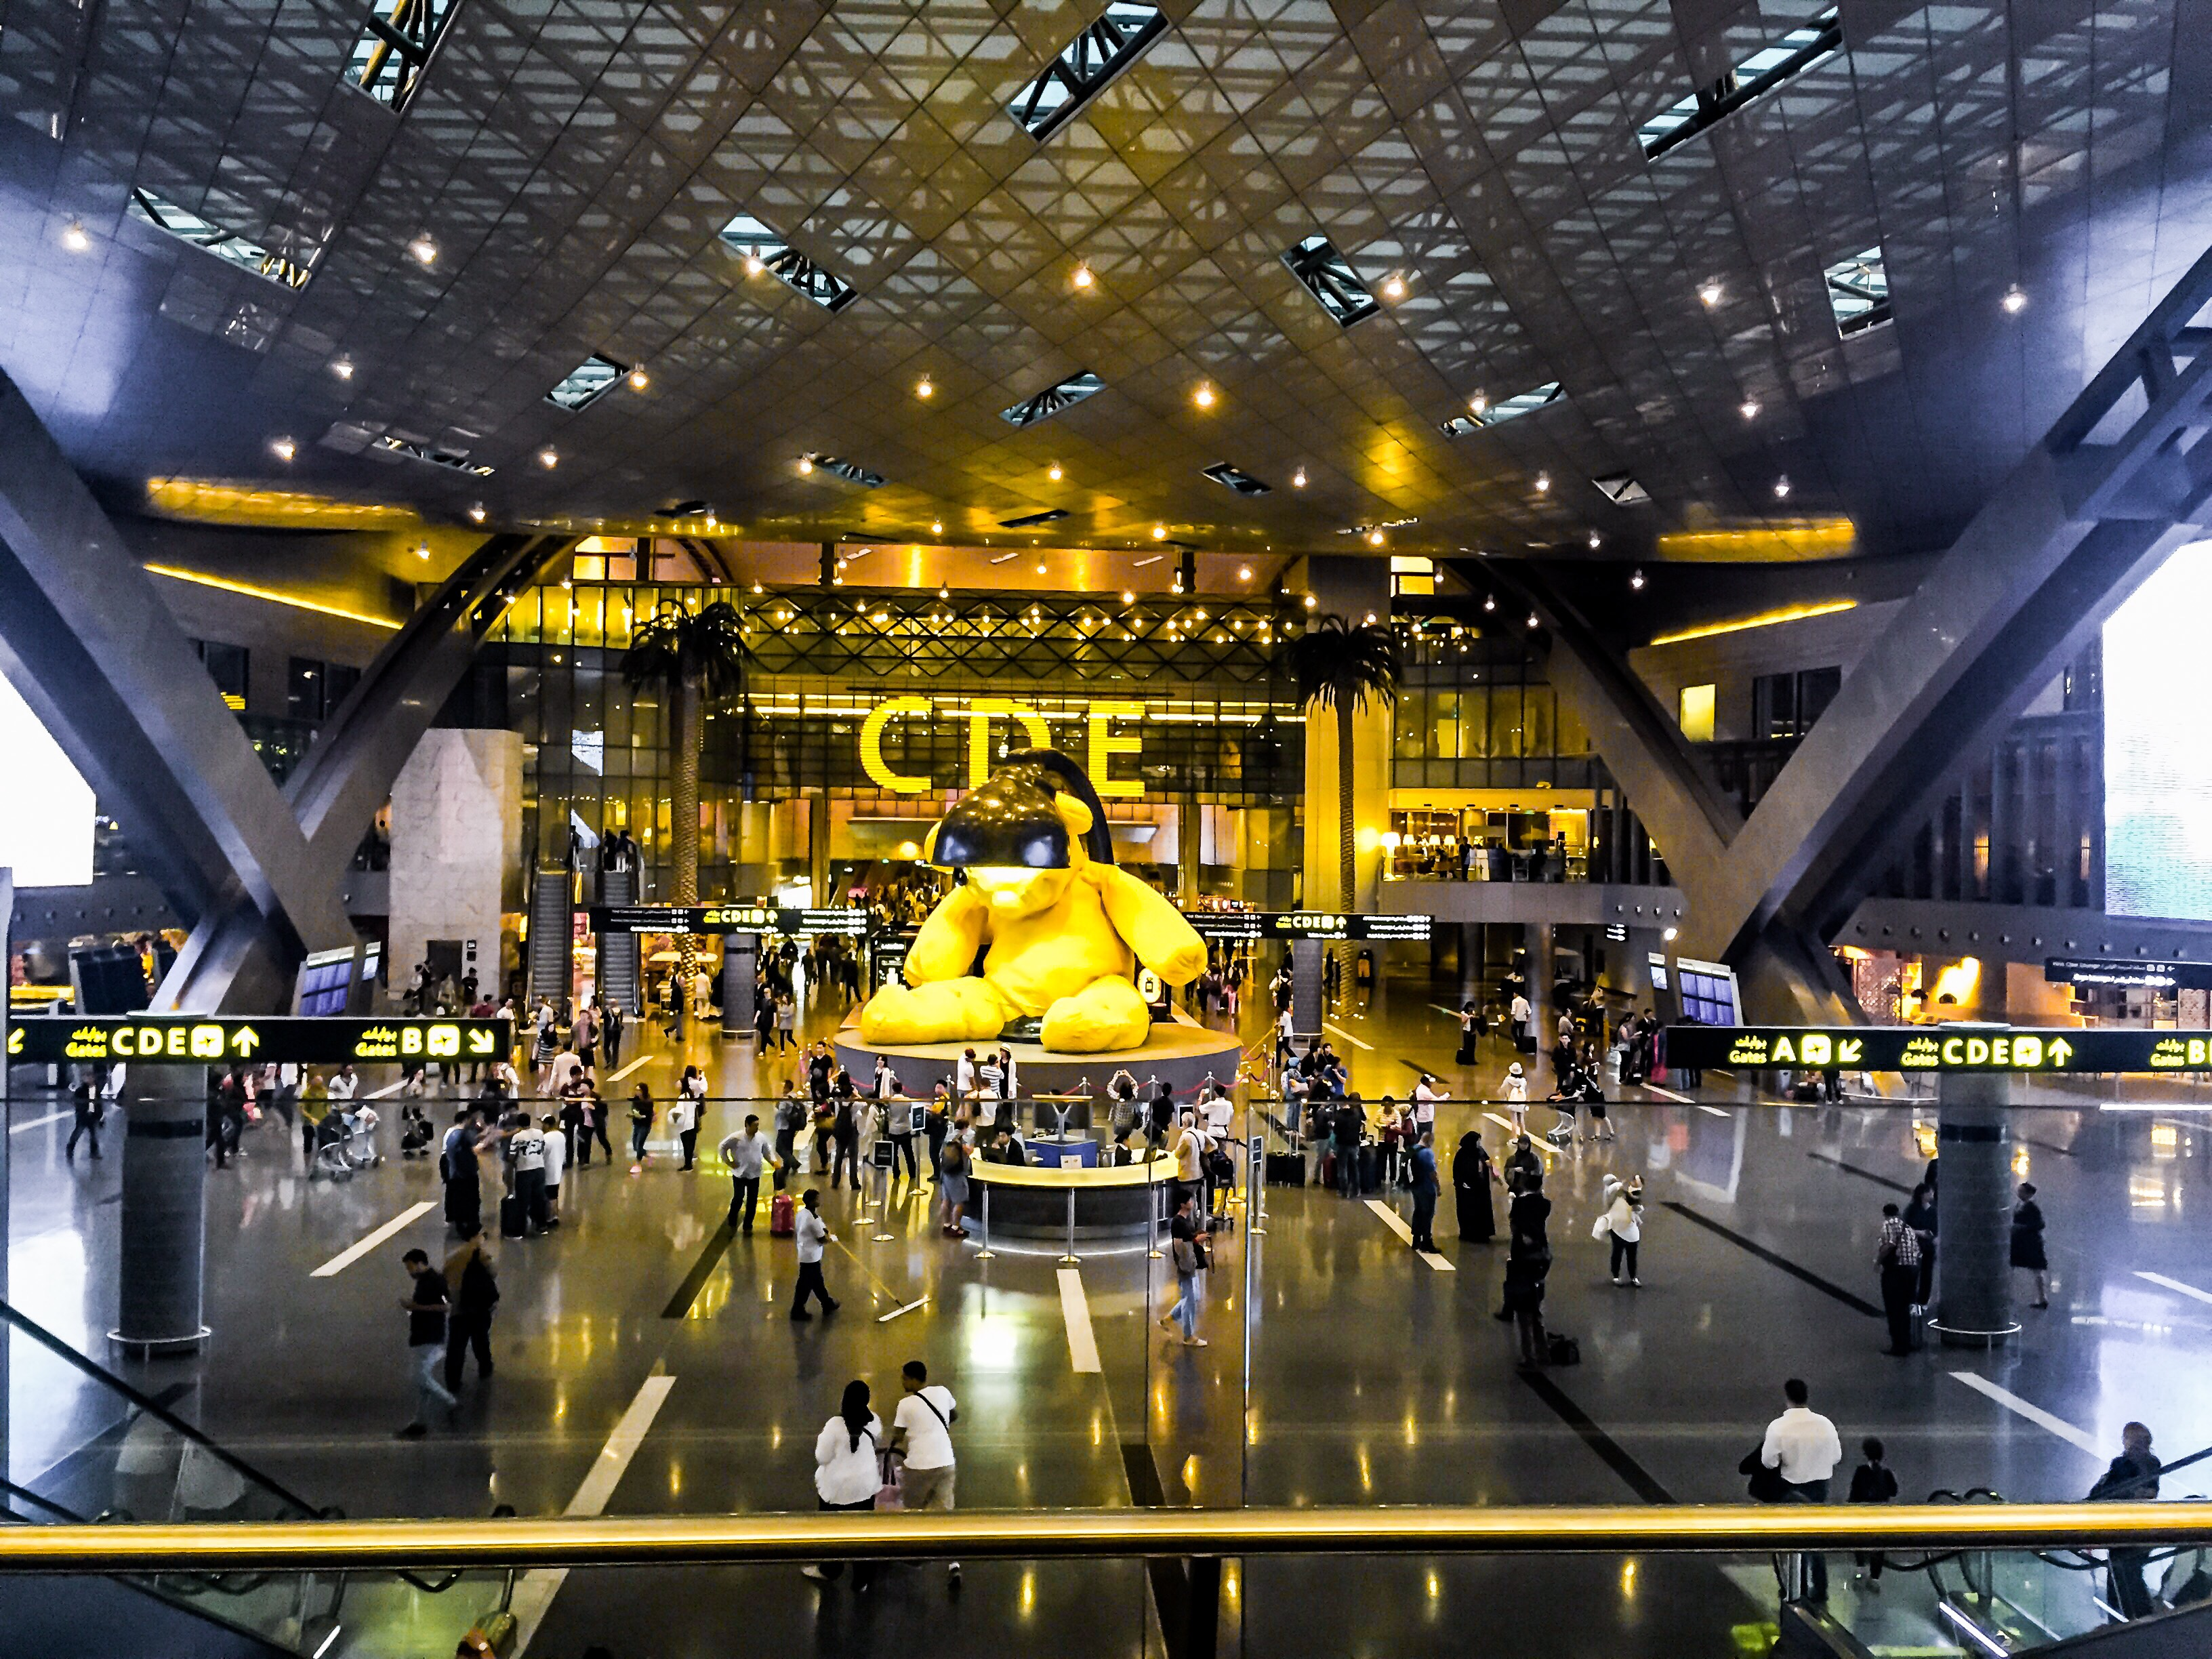 Main area of Hamad International Airport, with a giant yellow teddy bear statue in the center.